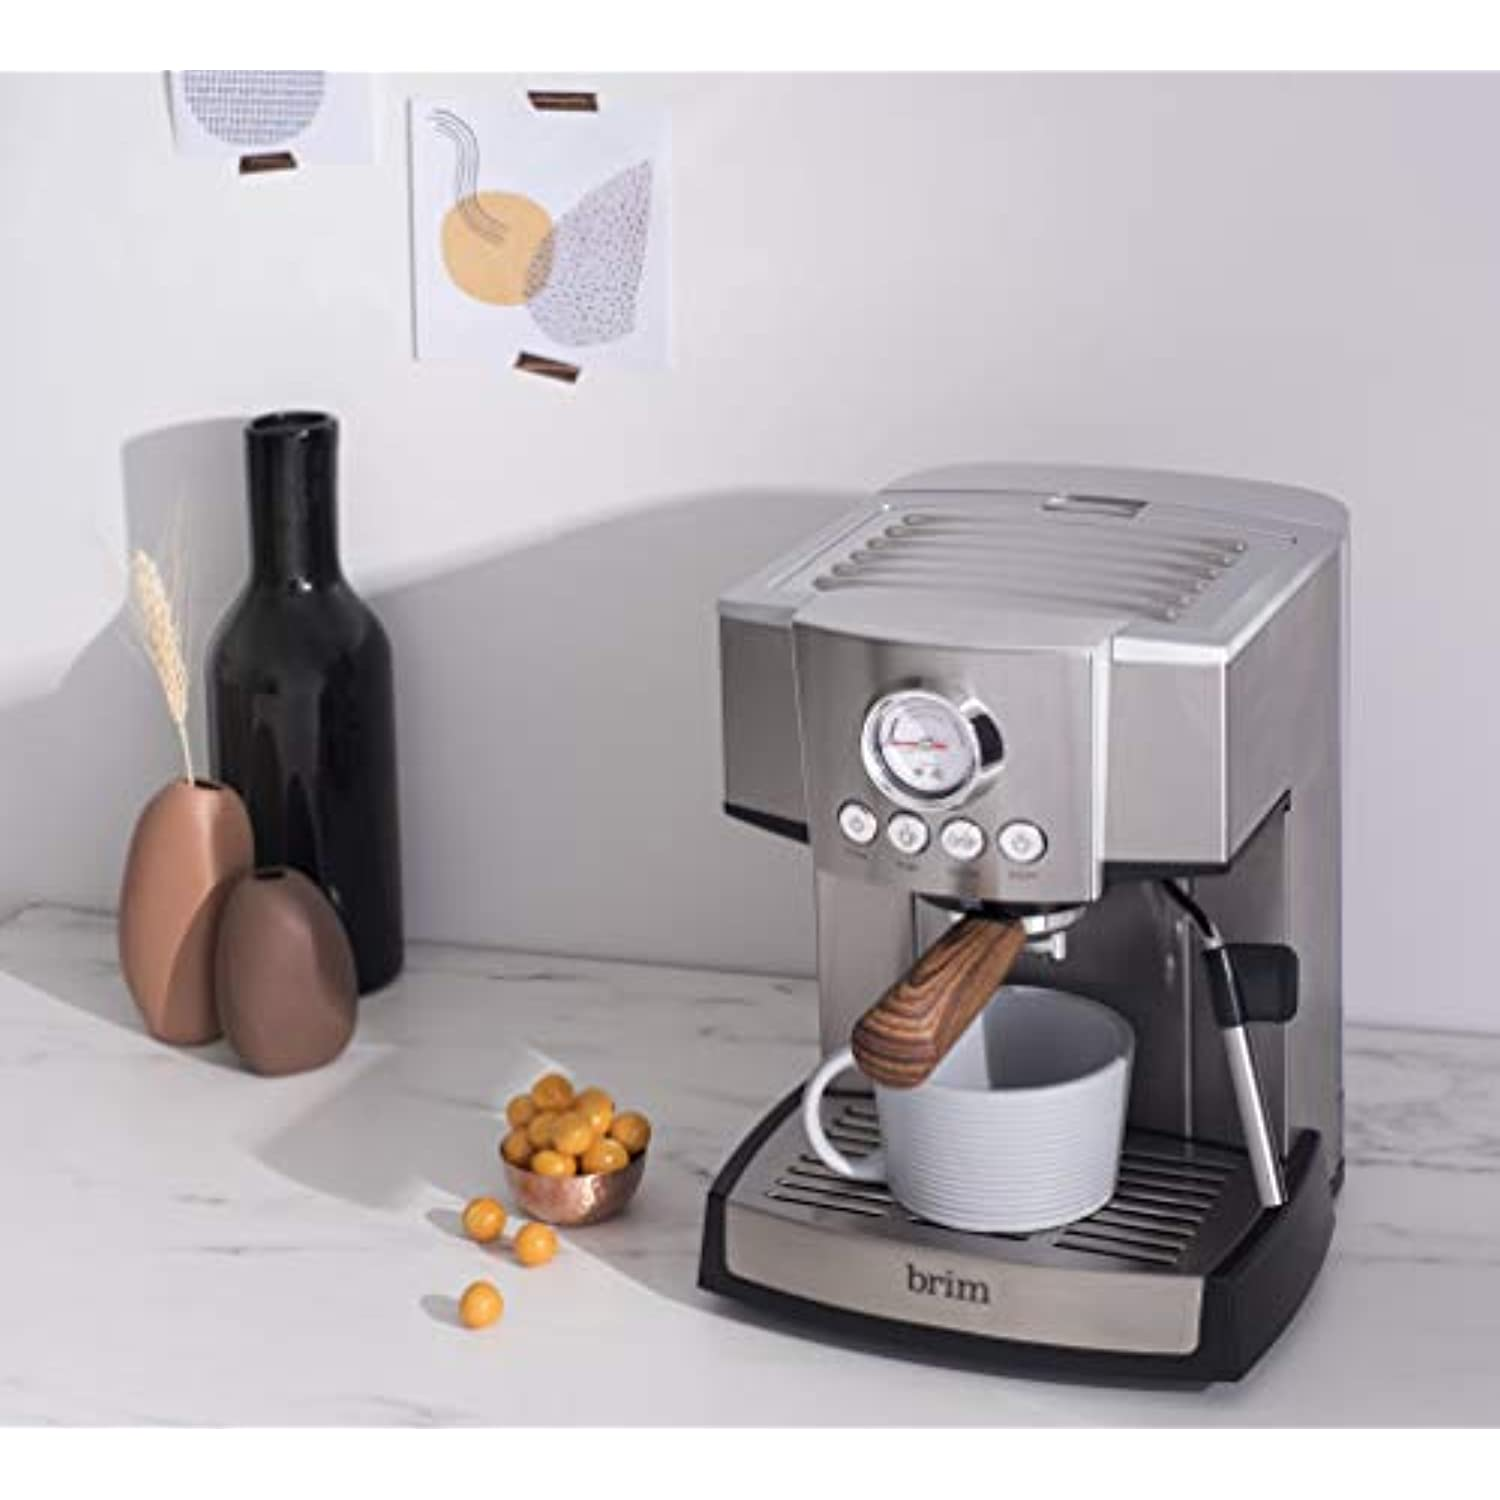 Brim 15 Bar Espresso Machine, Fast Heating Cappuccino, Americano, Latte and Espresso Maker, Milk Steamer and Frother, Removable Parts for Easy Cleaning, Stainless Steel/Wood Accents